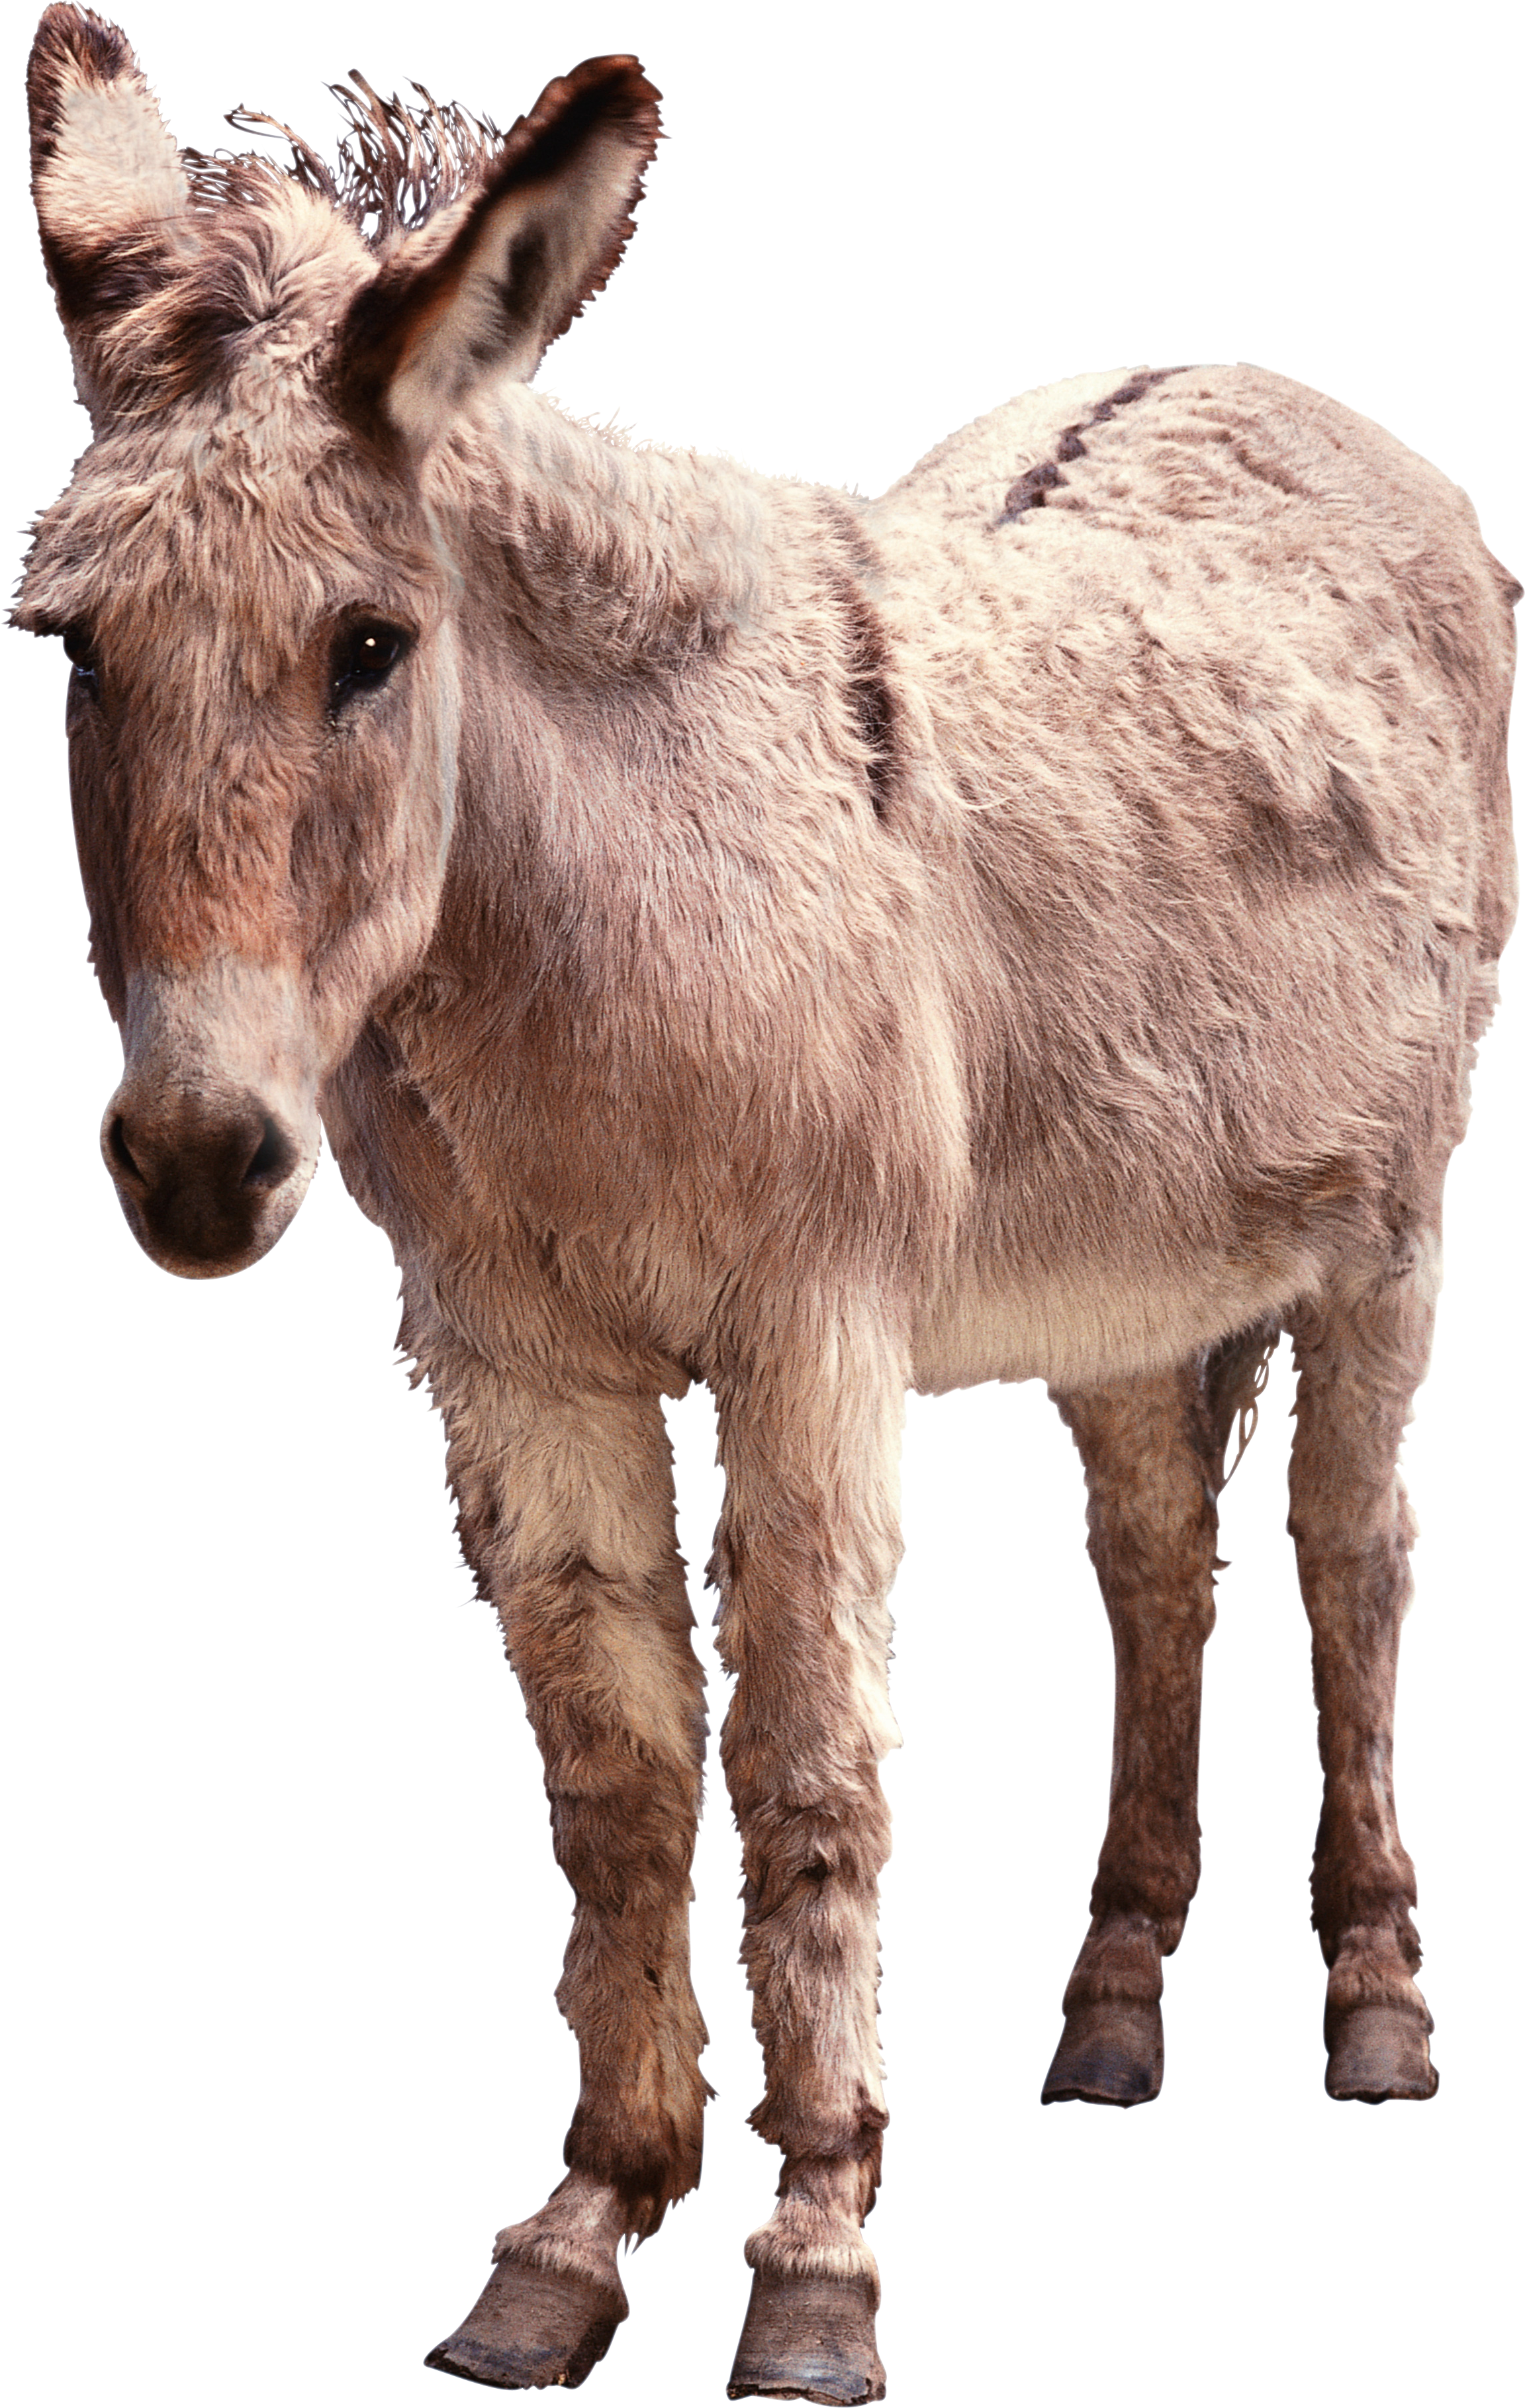 Donkey PNG images free download.